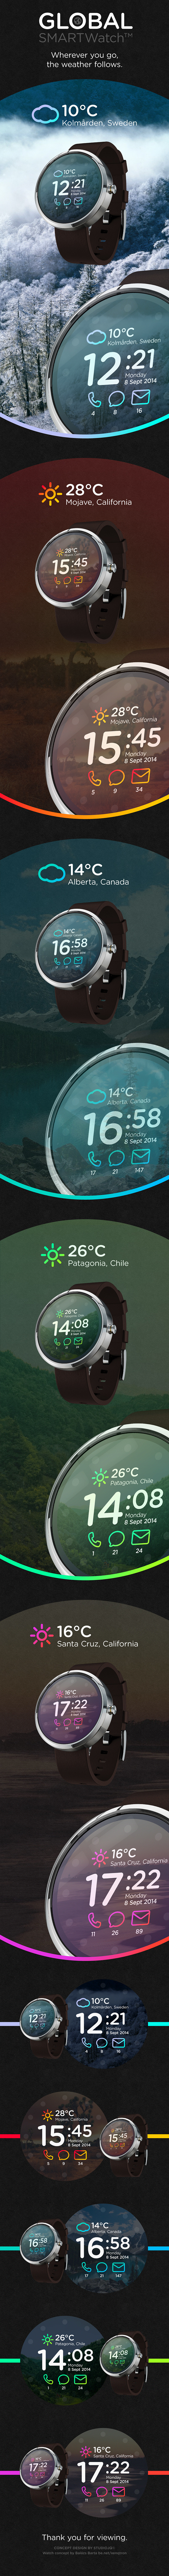 Global SMARTWatch™ // Concept on Behance #ios8 #smartwatch #weather #ux #interface #iwatch #ui #clean #concept #watch #wristwatch #ios